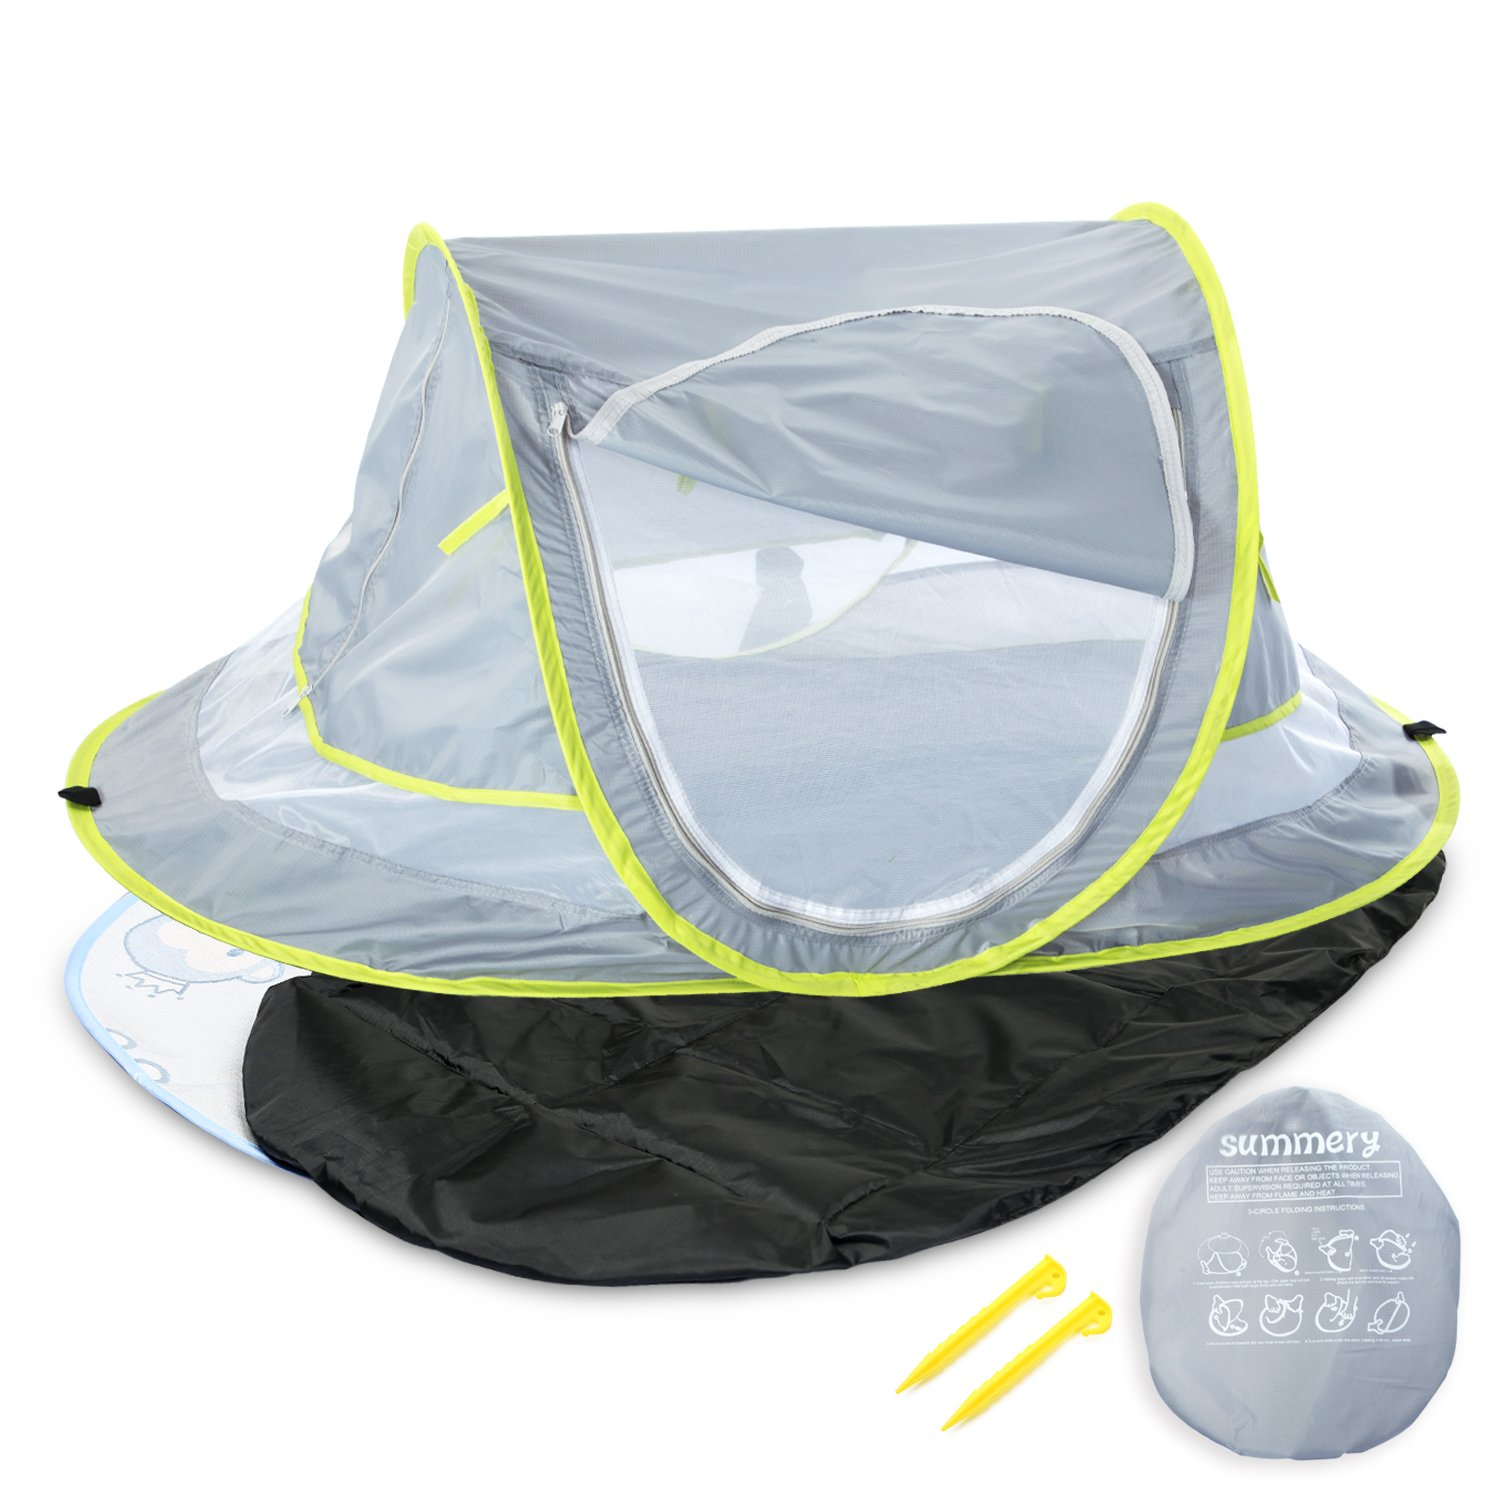 Infant Sun Shelters Pop Up Folding Travel Bed Mosquito Net Sunshade C Travel Baby Bed Large Baby Tent Portable Baby Travel Tent UPF 50